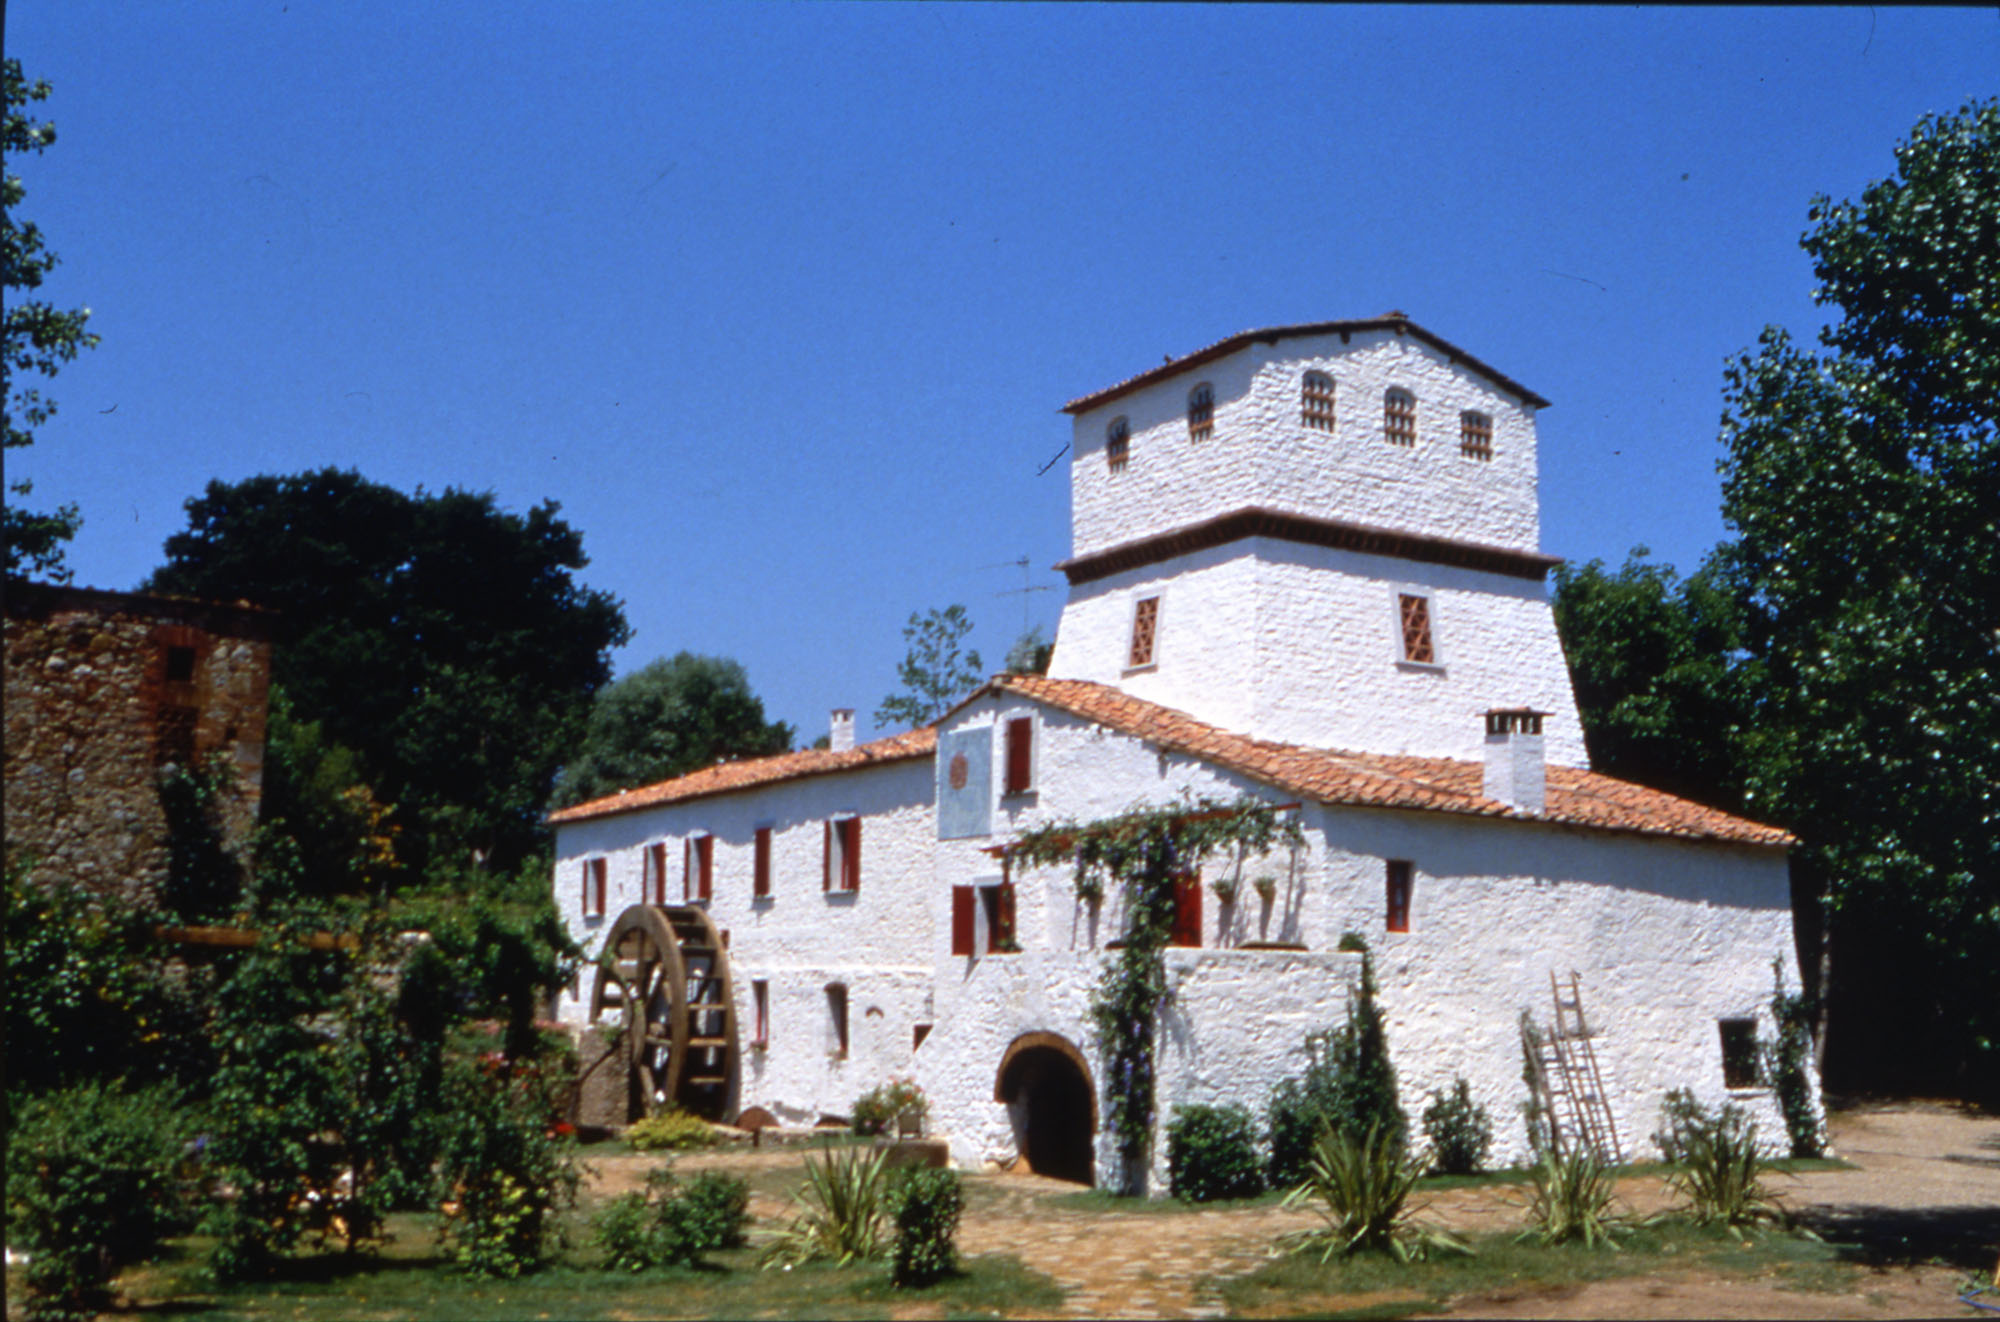 Chiusdino Mill as appears in  Mulino Bianco advertisings between 1990 and 1994